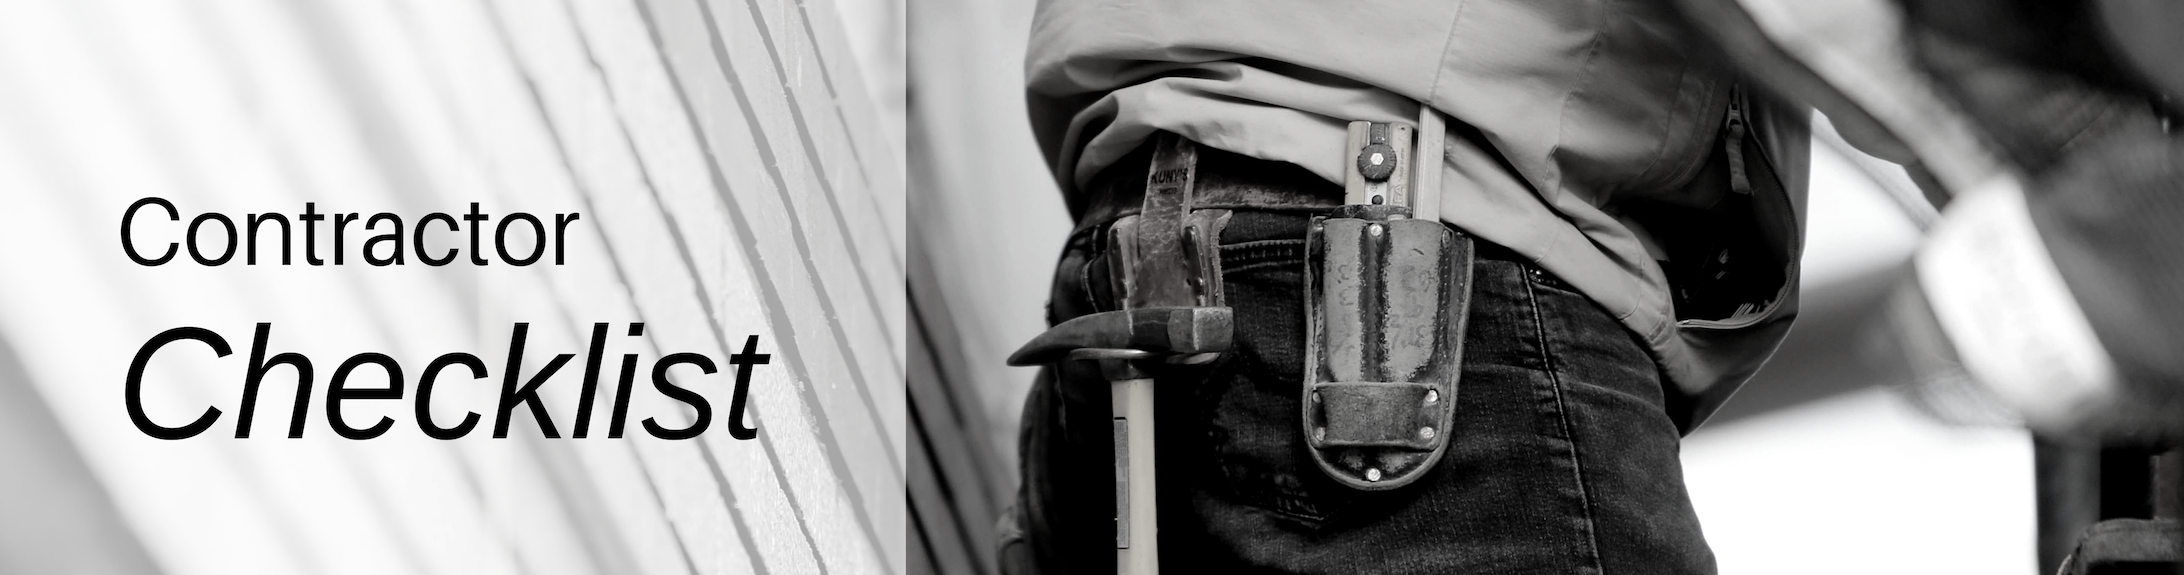 Picture of man with tool belt